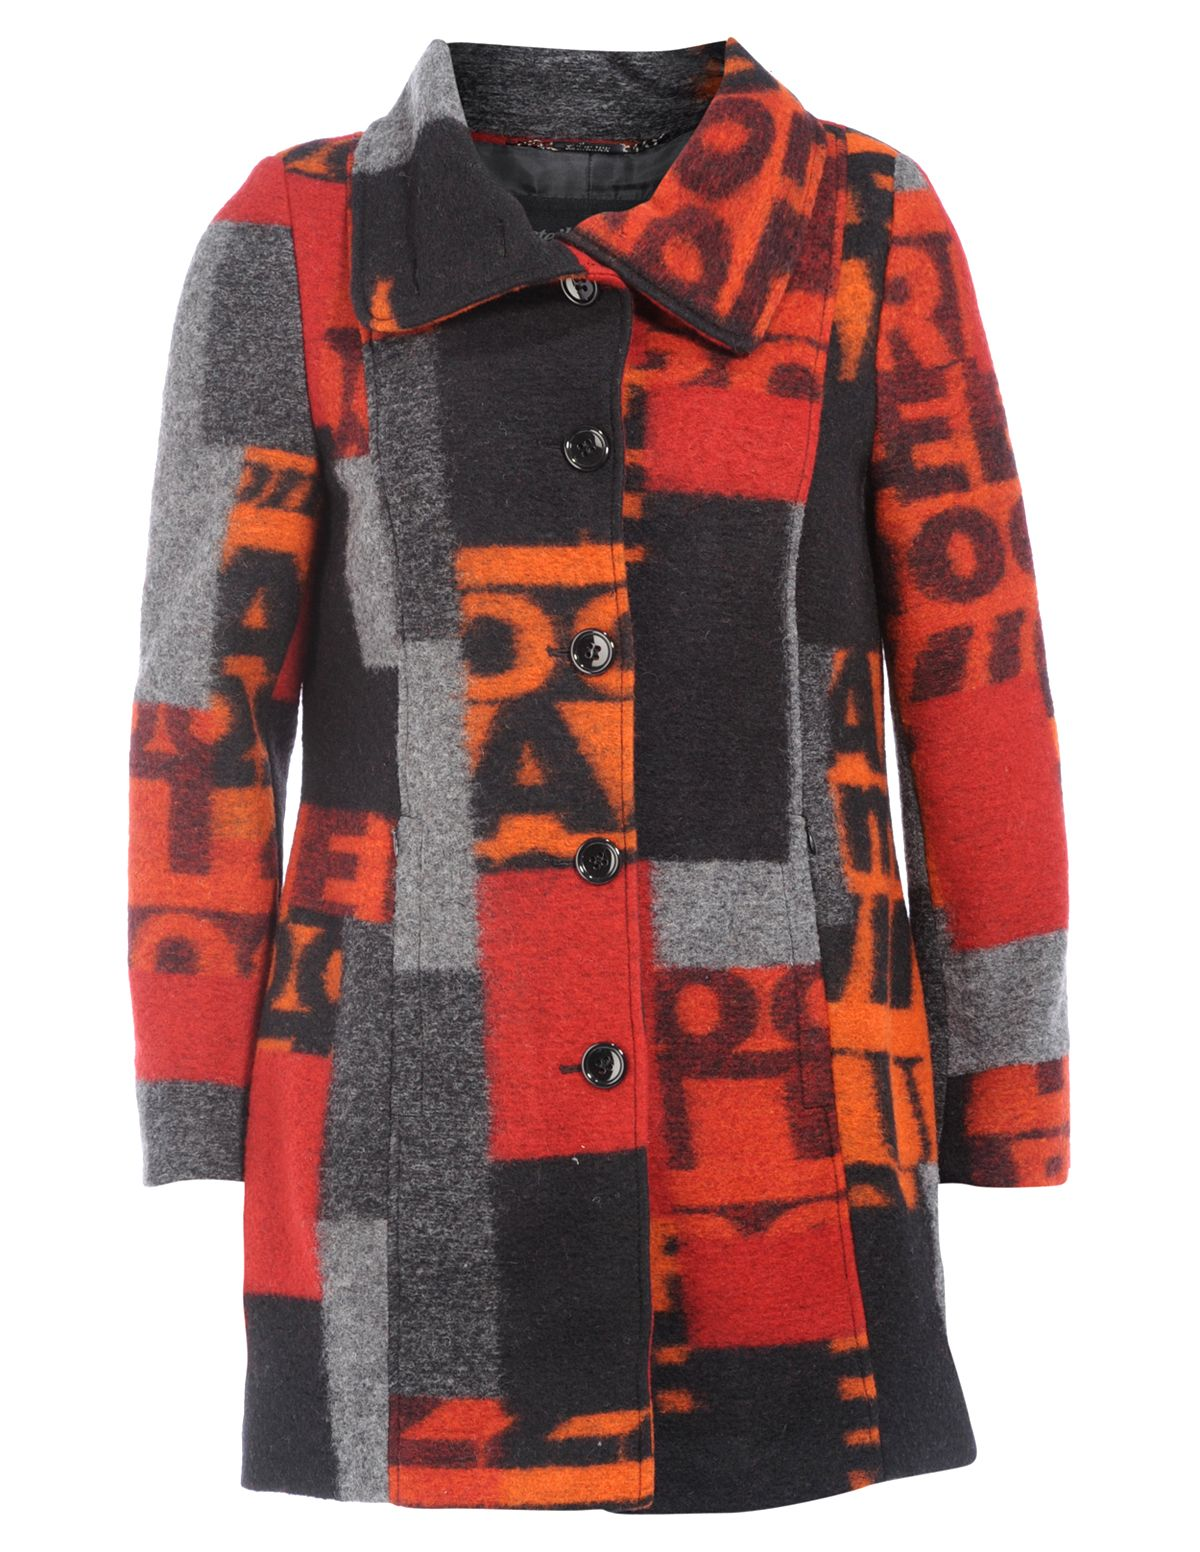 51442893f6cc Printed wool-blend coat in Black / Red designed by Steilmann to find in Category  Coats & Jackets at navabi.de